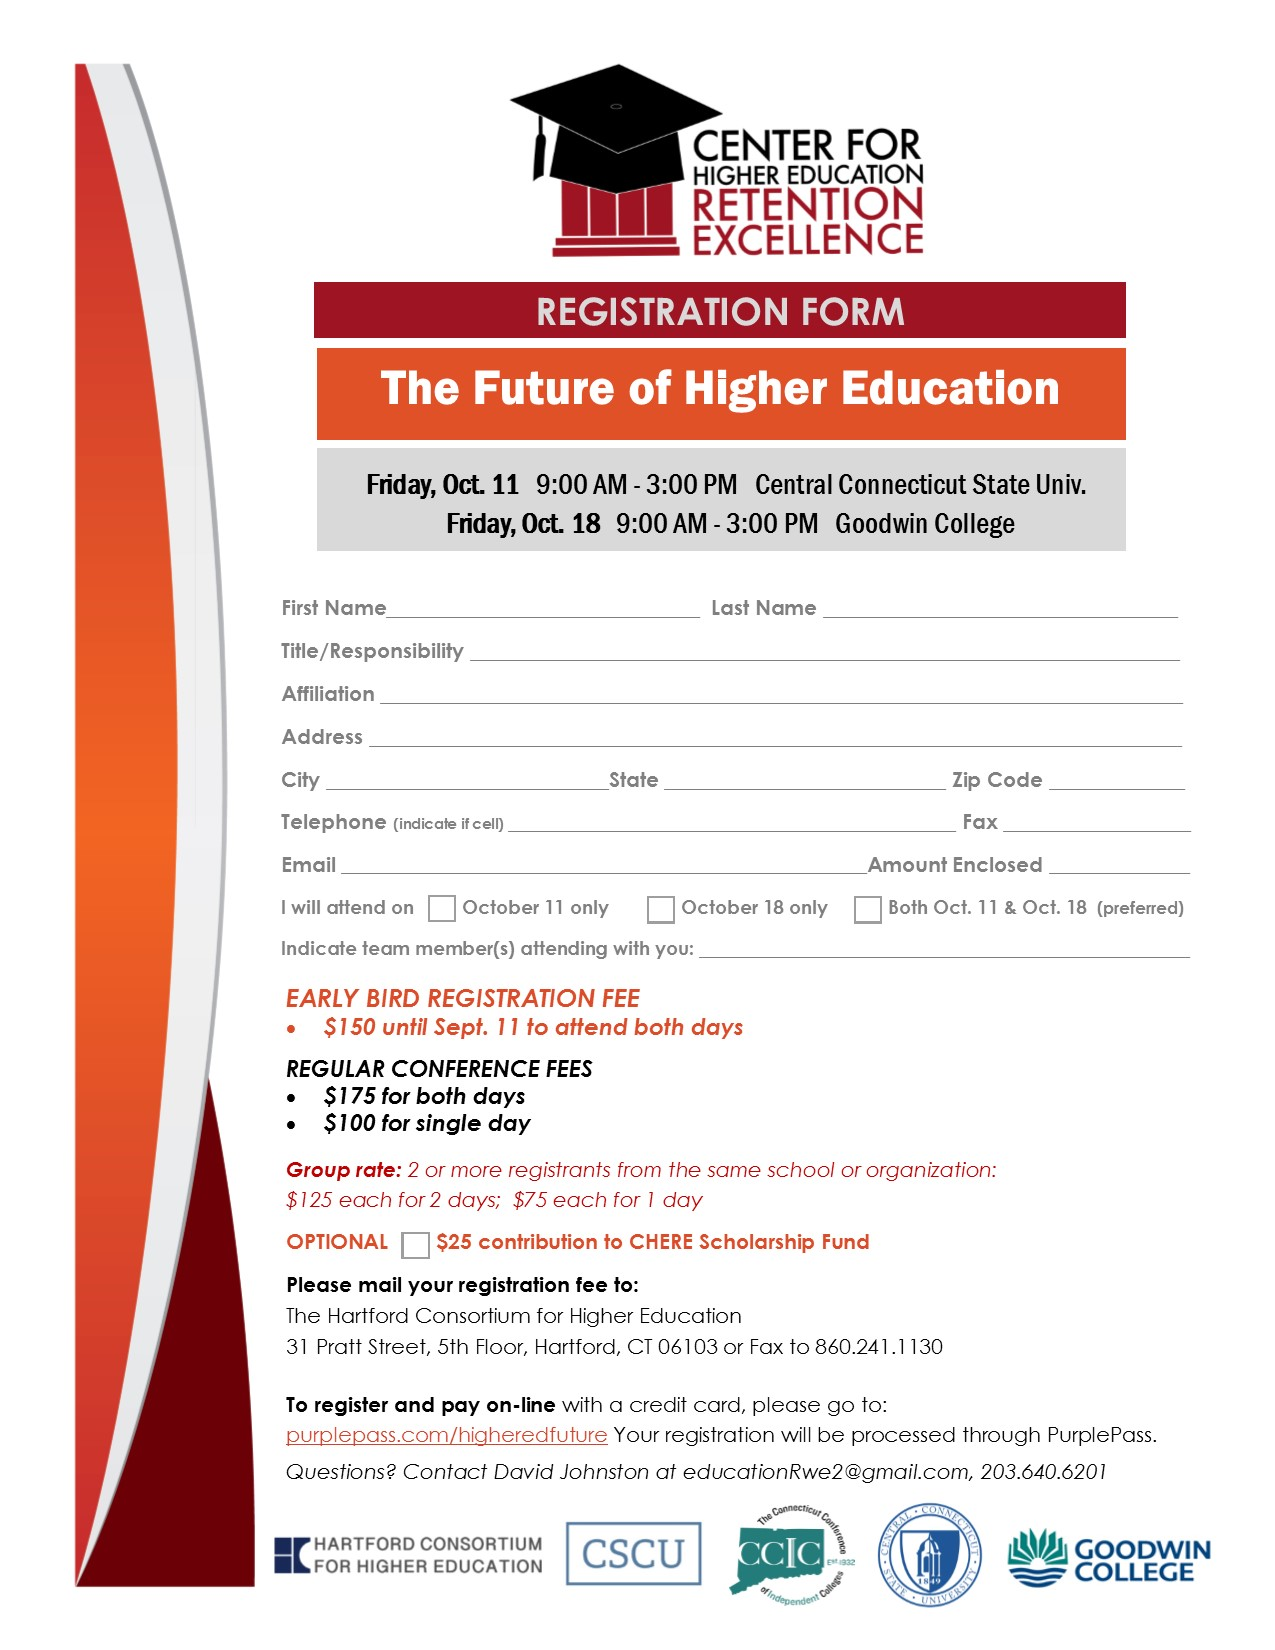 The Future of Higher Education - Part 1 — CHERE